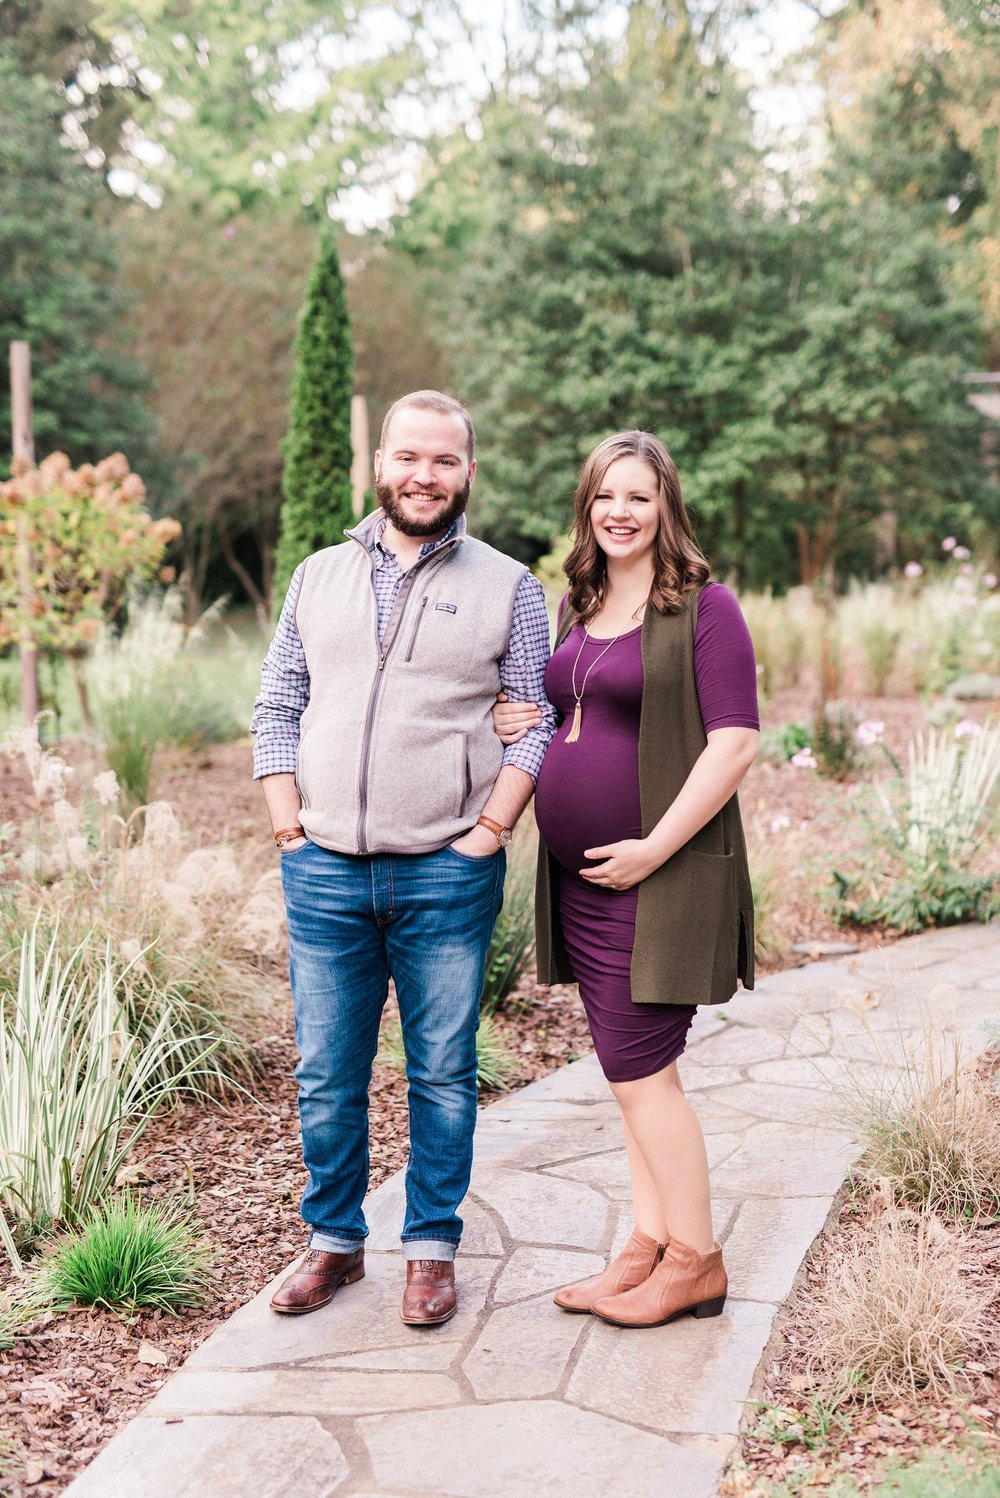 cator-woolforld-gardens-atlanta-fine-art-maternity-photographer-boltfamily-91.jpg